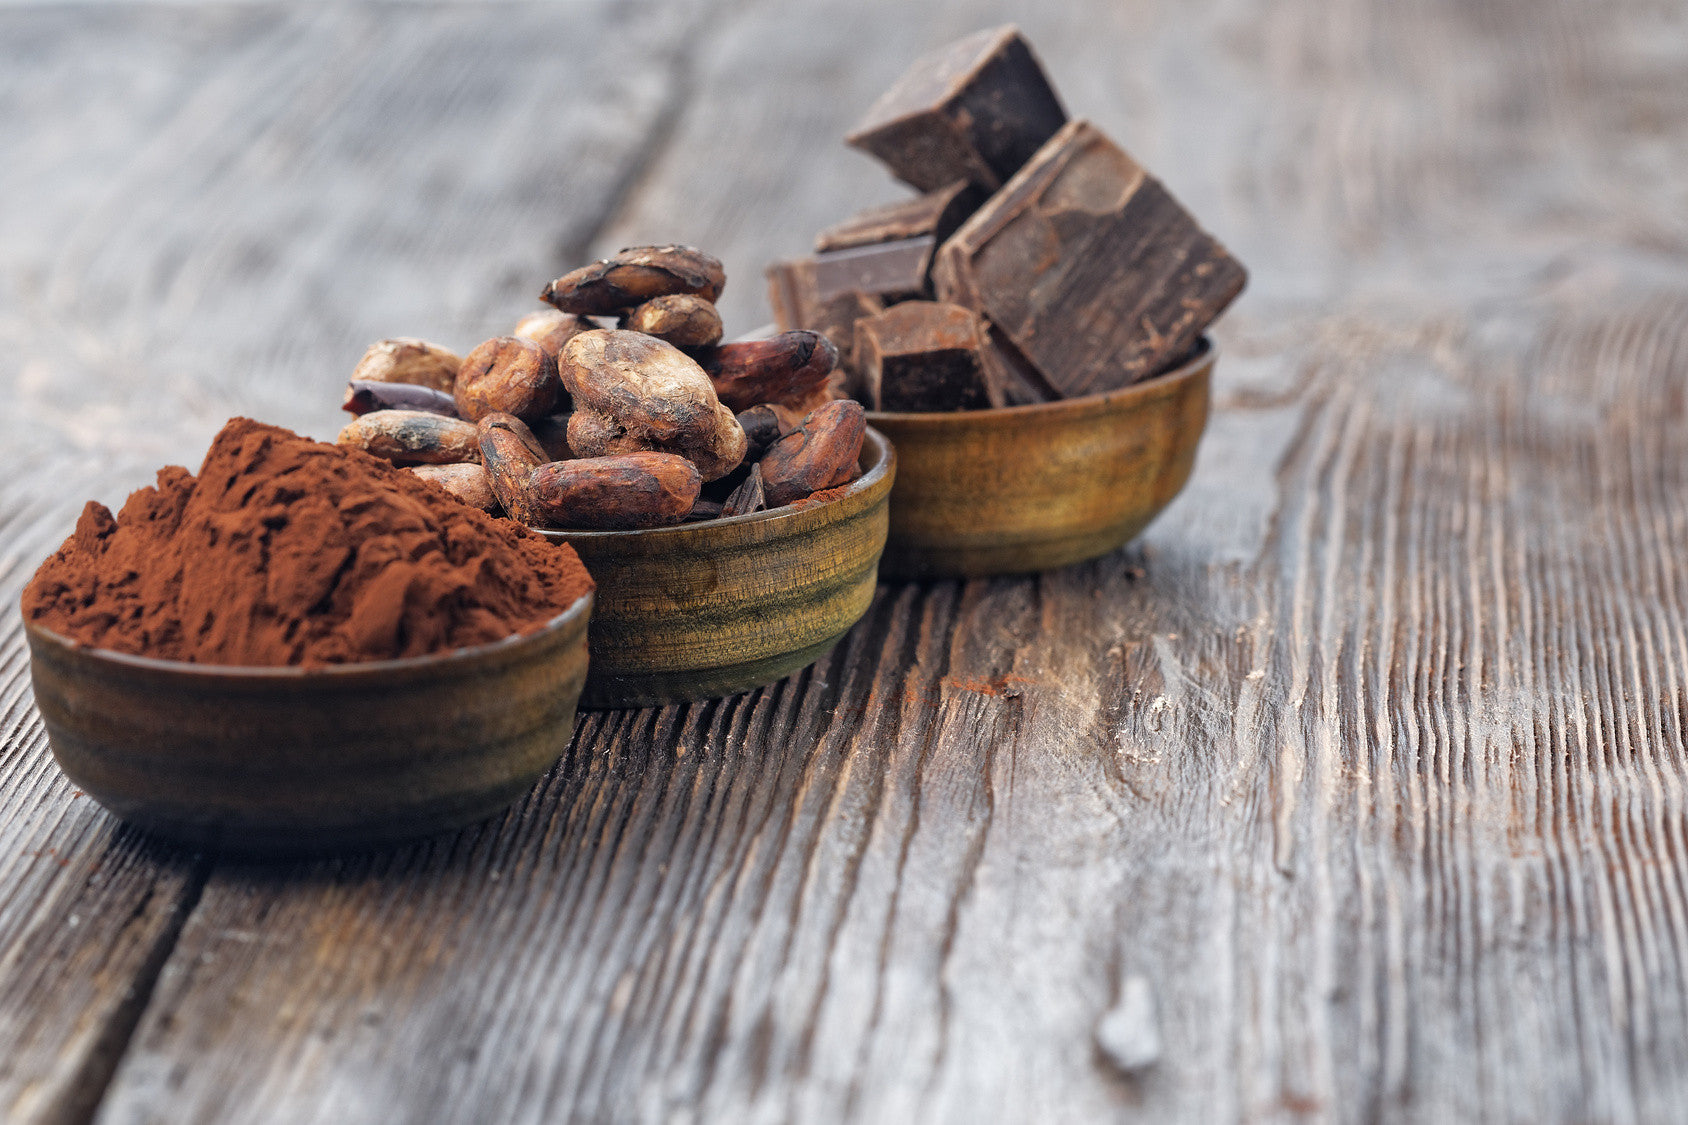 The top six powerful health benefits of cacao